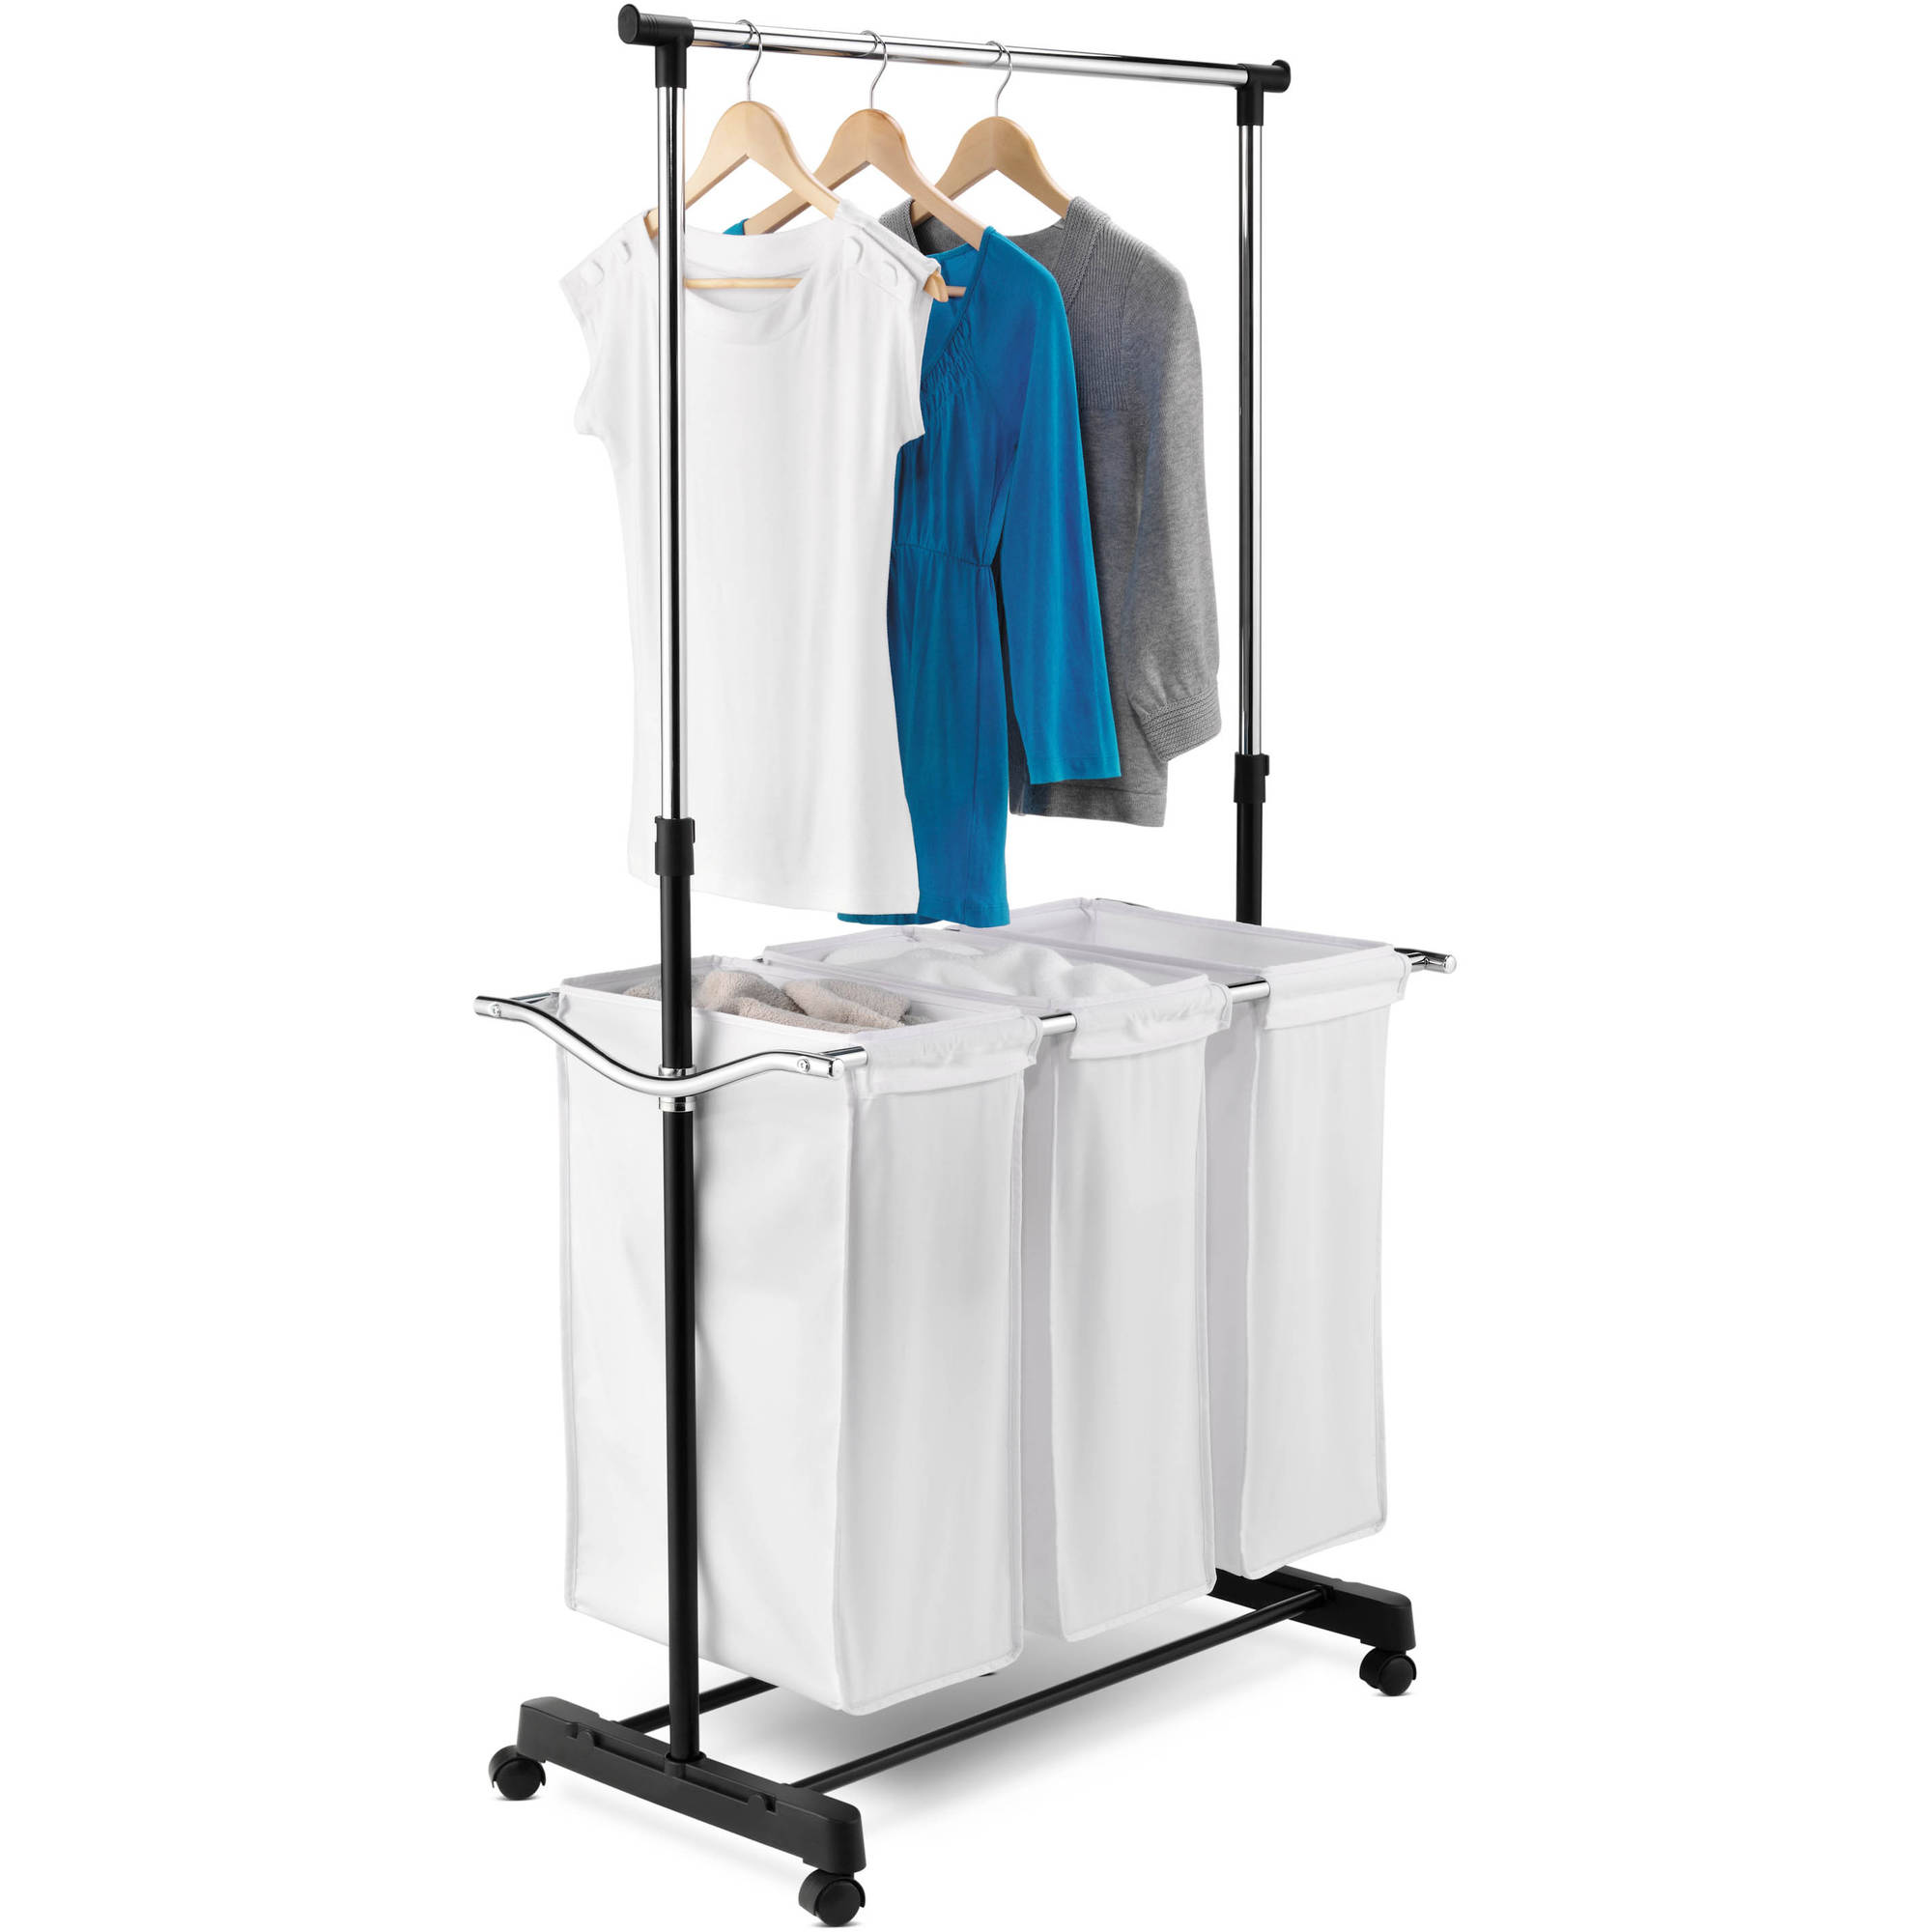 Laundry Hanging Bar Honey Can Do Triple Sorter Laundry Center With Hanging Bar